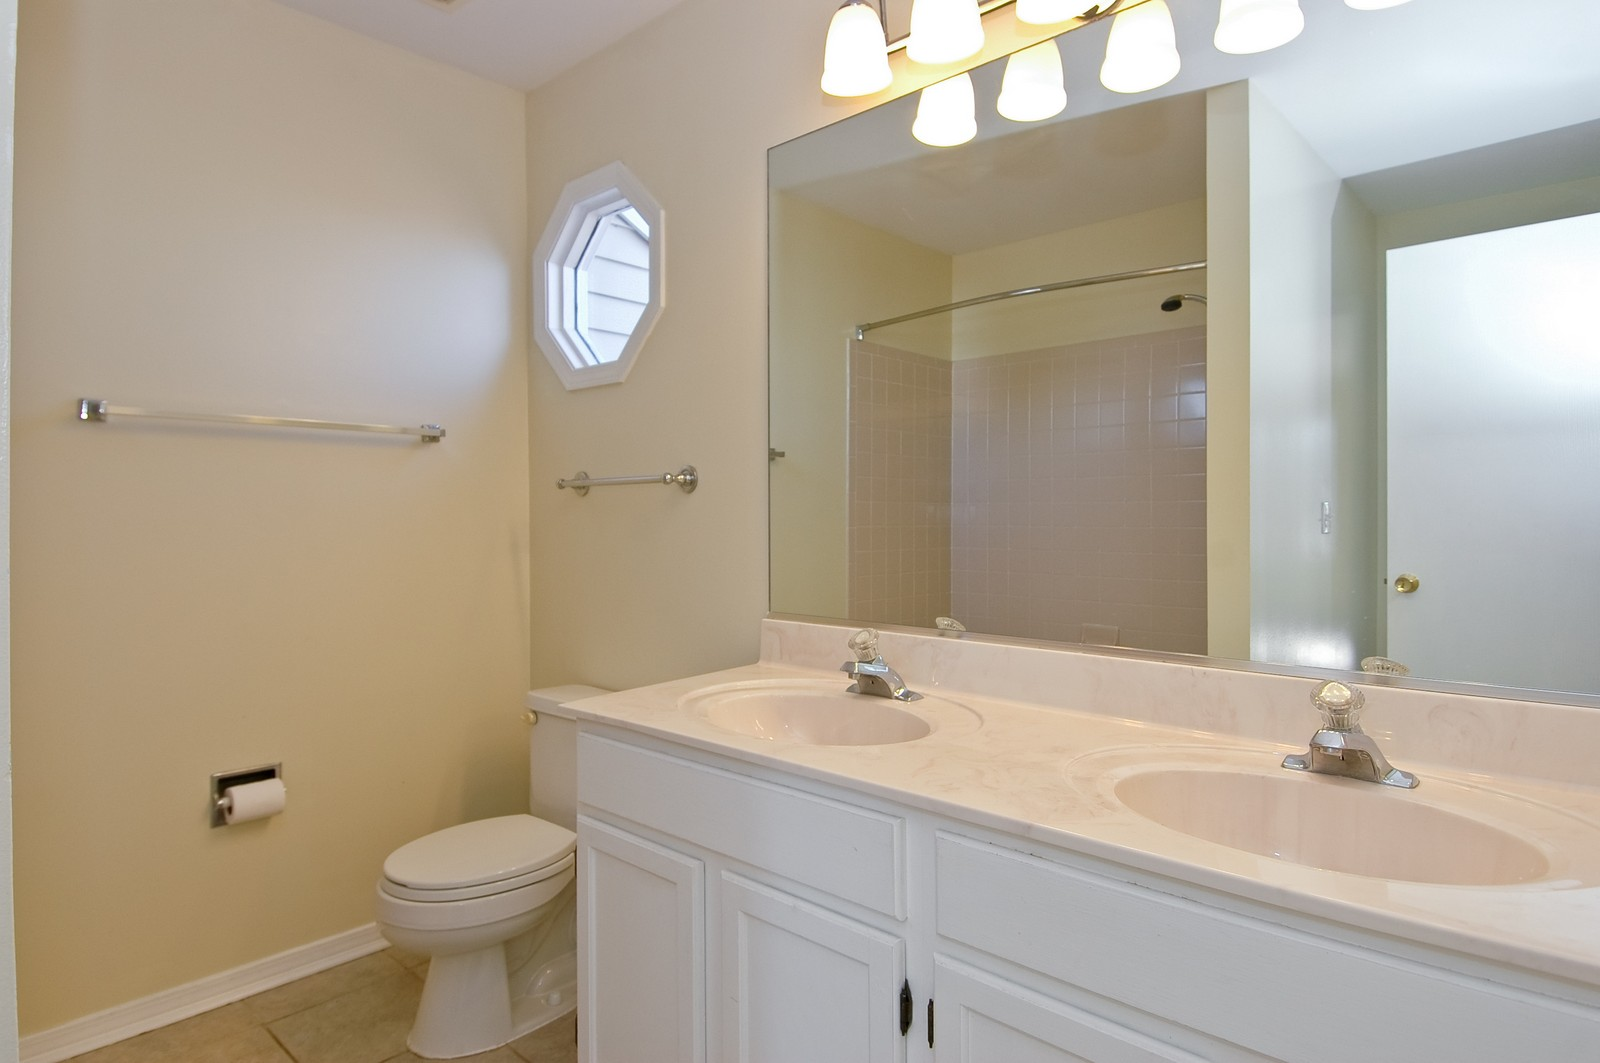 Real Estate Photography - 81 Kingsport, South Elgin, IL, 60177 - Bathroom